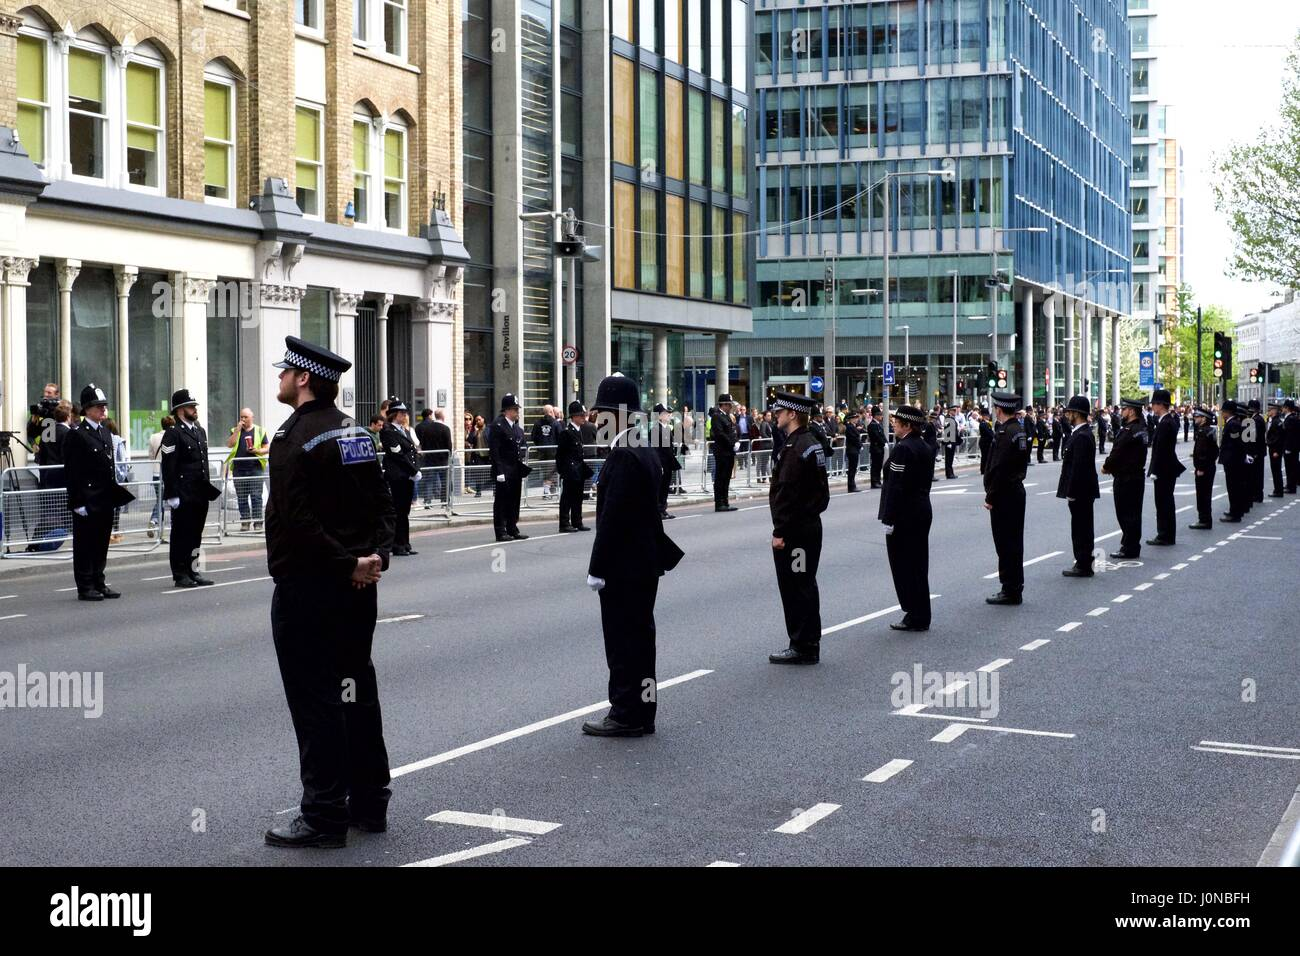 Police lining the street at the funeral of PC Keith Palmer - Stock Image